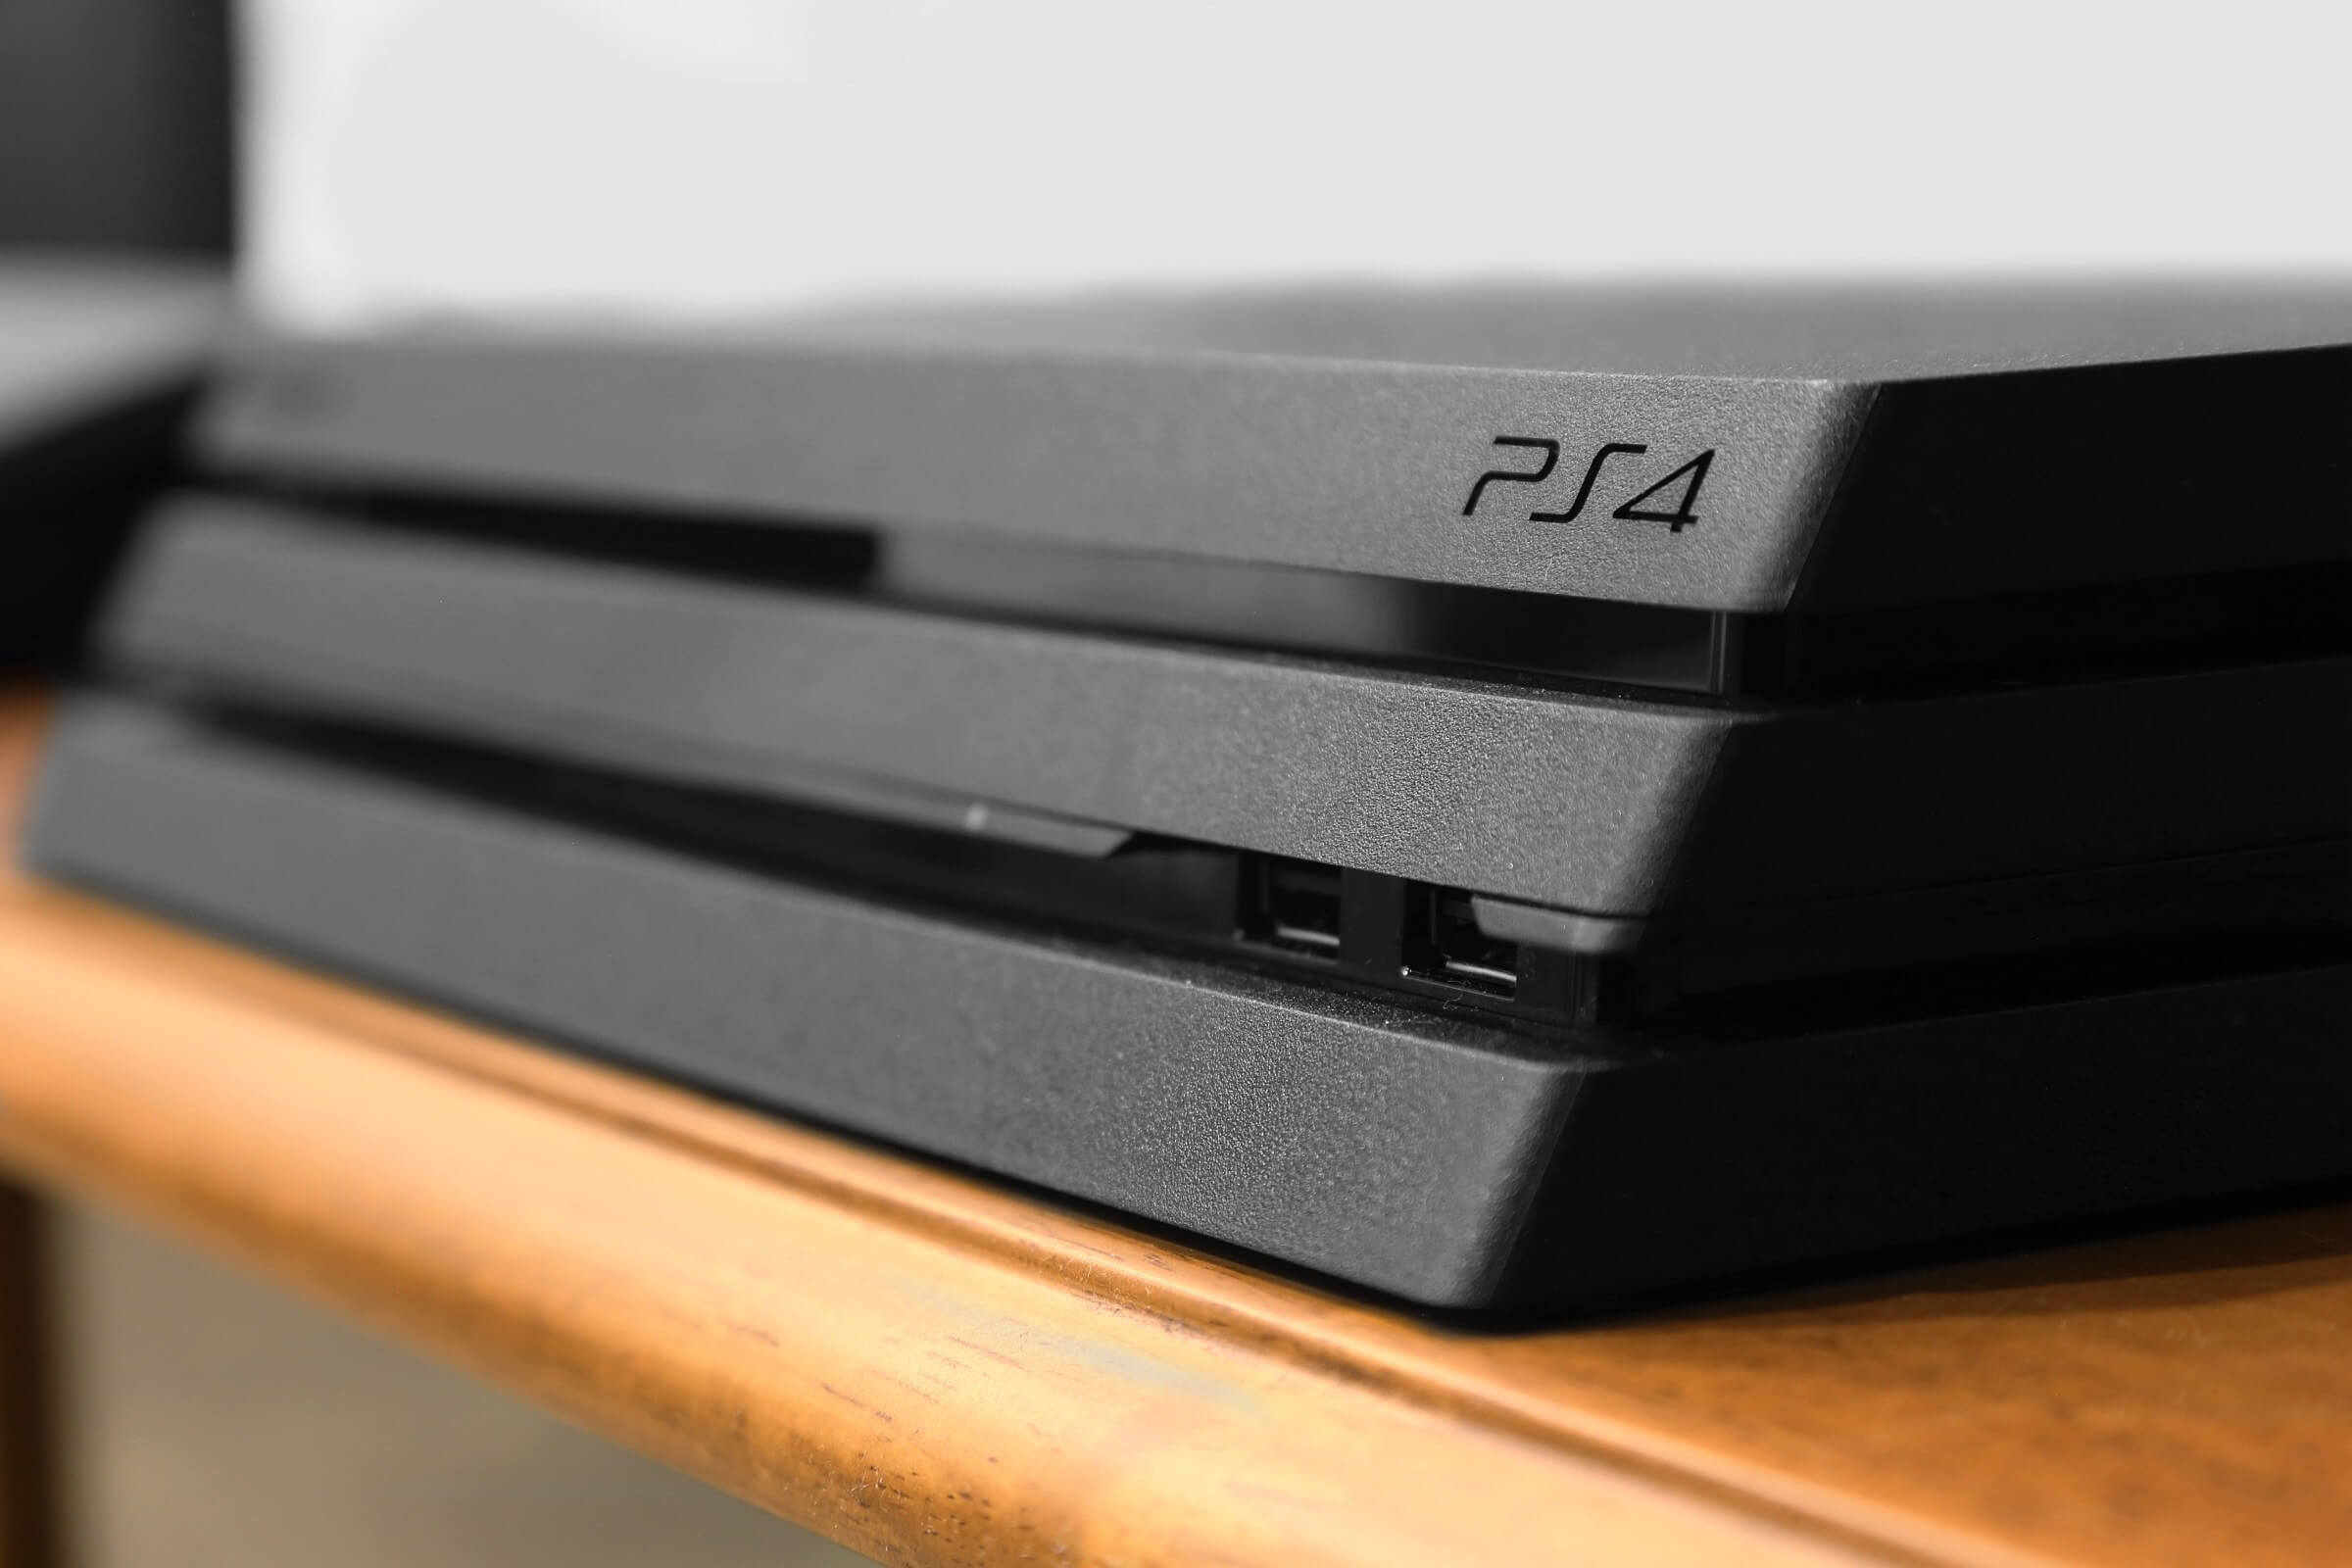 Sony Quietly Revs the PlayStation 4 Pro